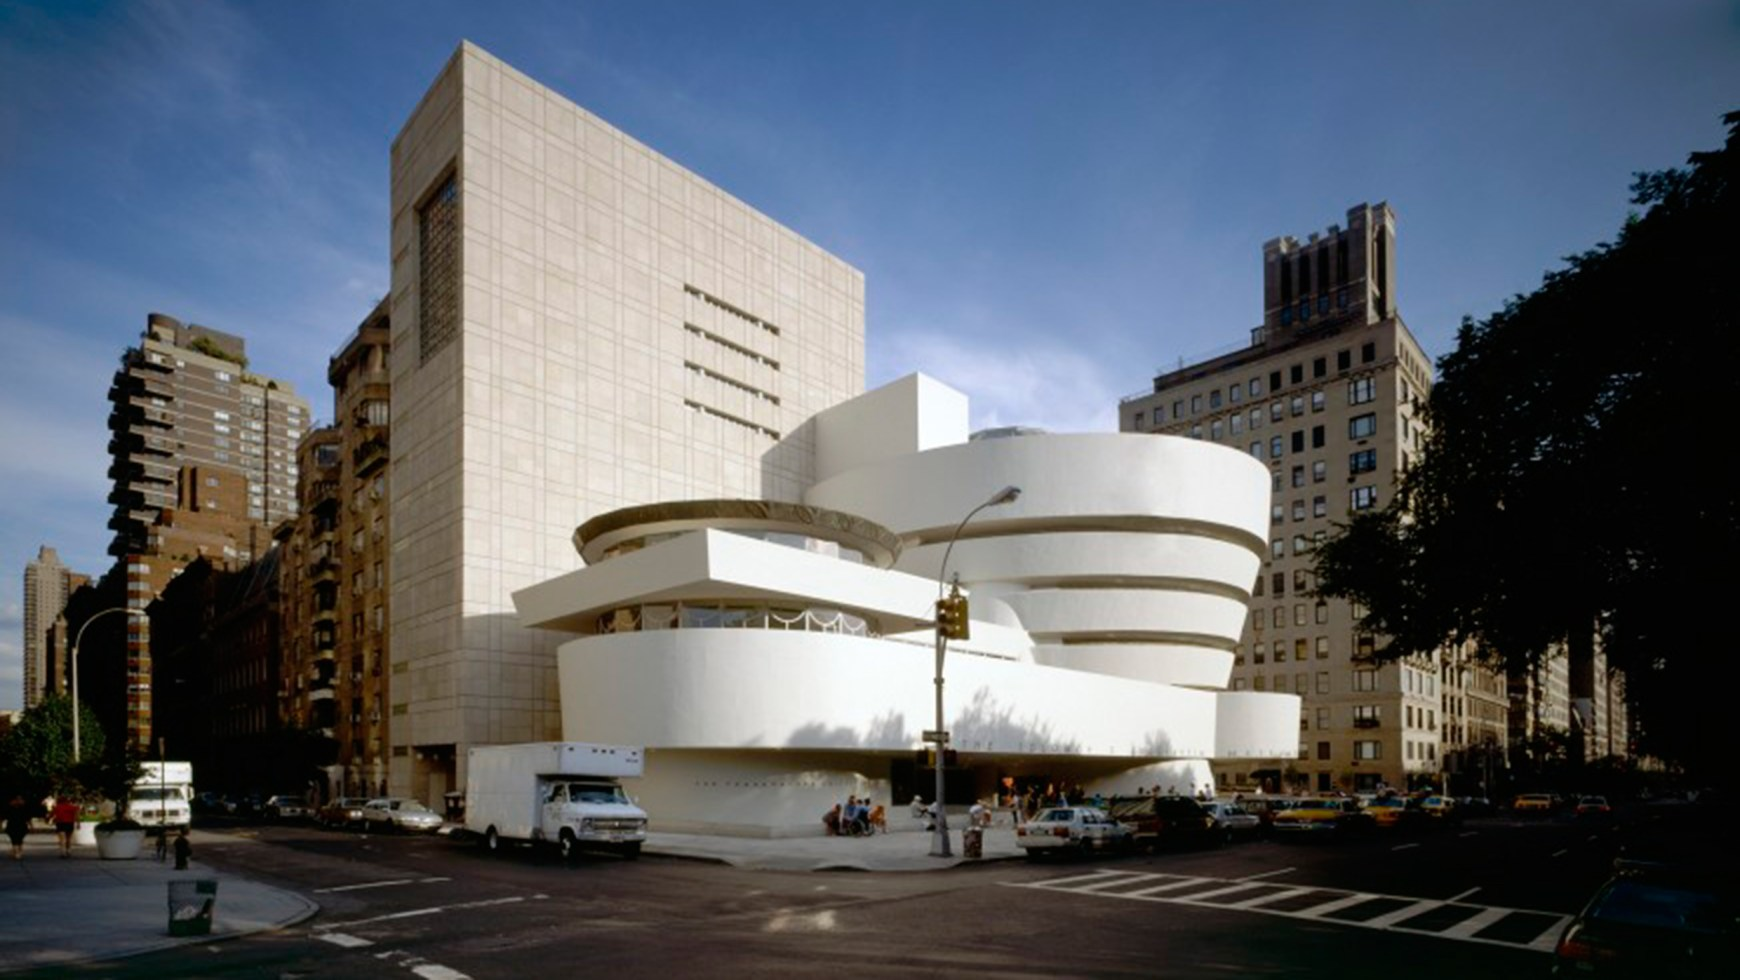 Exterior view of the Solomon R. Guggenheim Museum